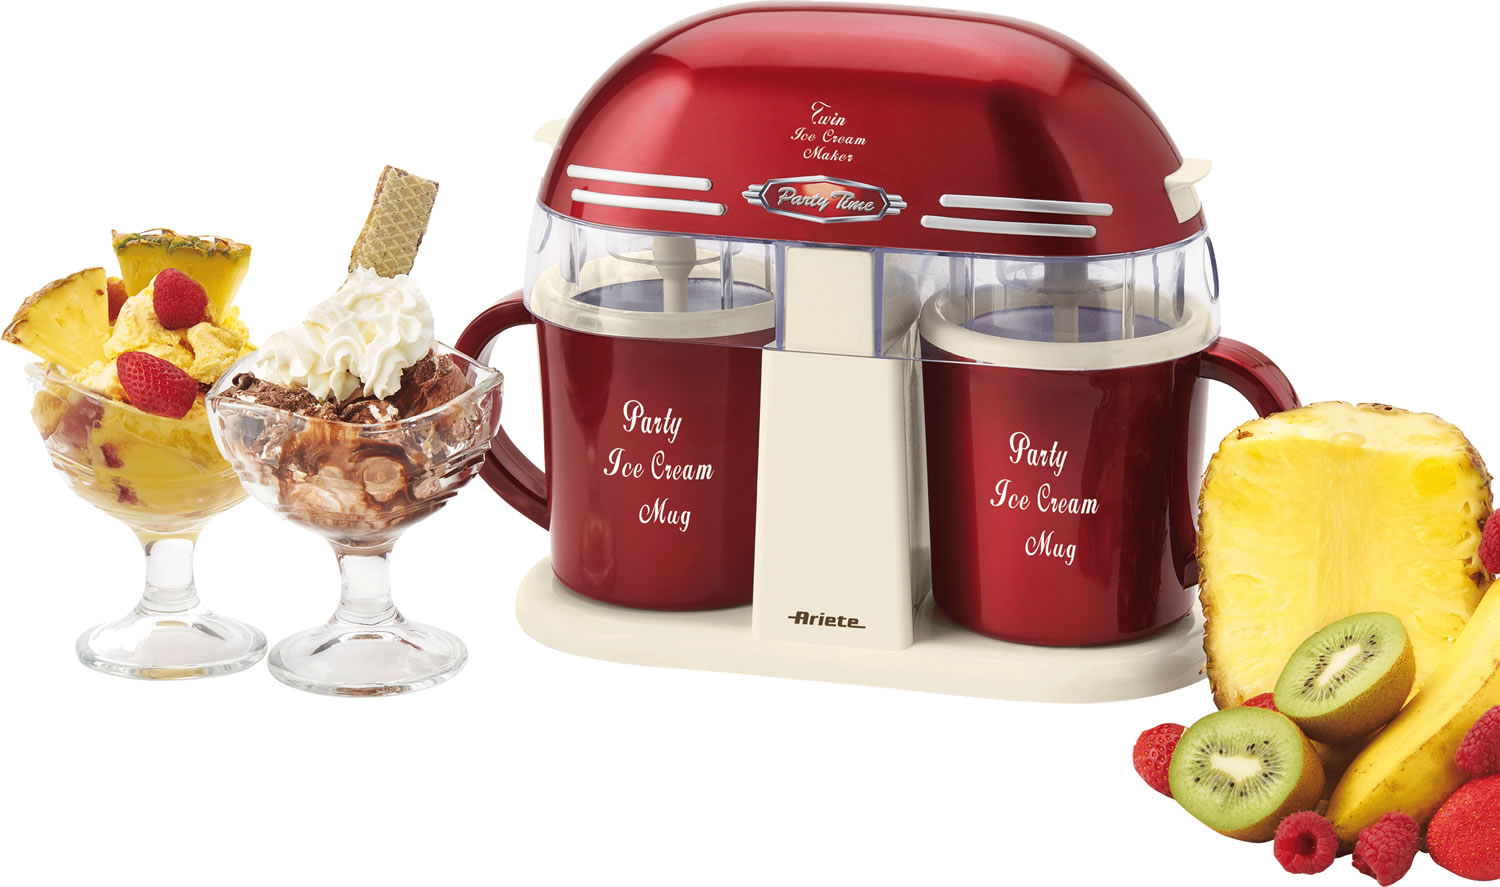 Twin Ice Cream Maker